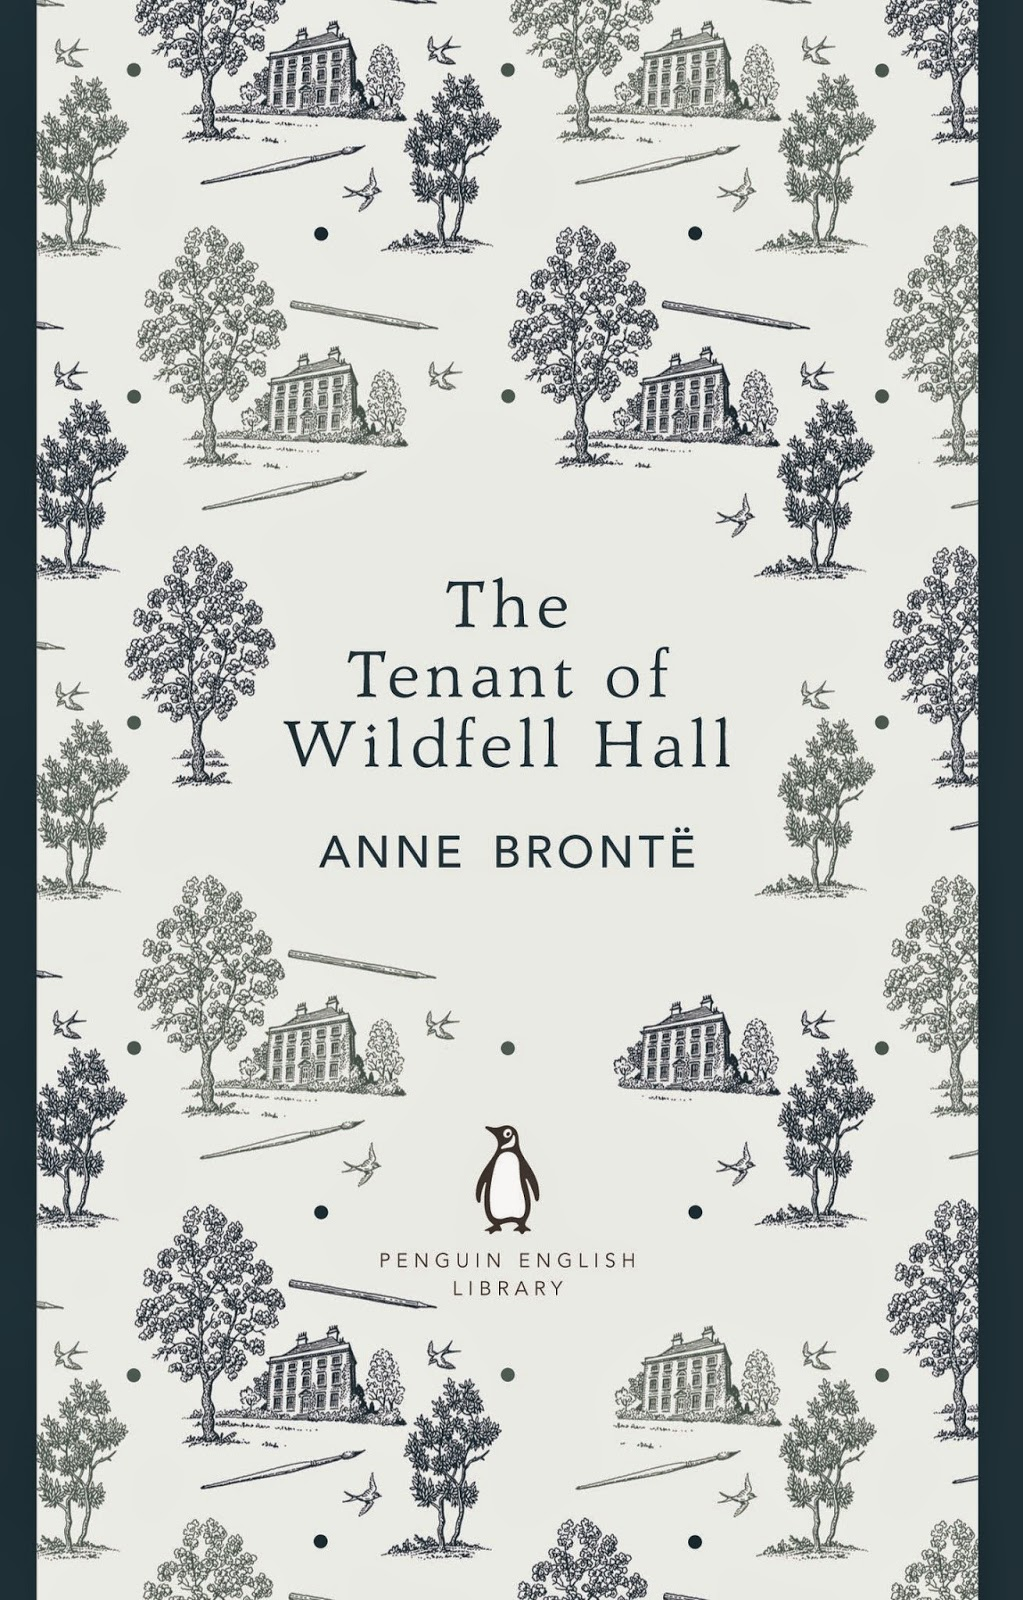 Pneguin English Library book cover of Tenant of Wildfell Hall by Anne Bronte